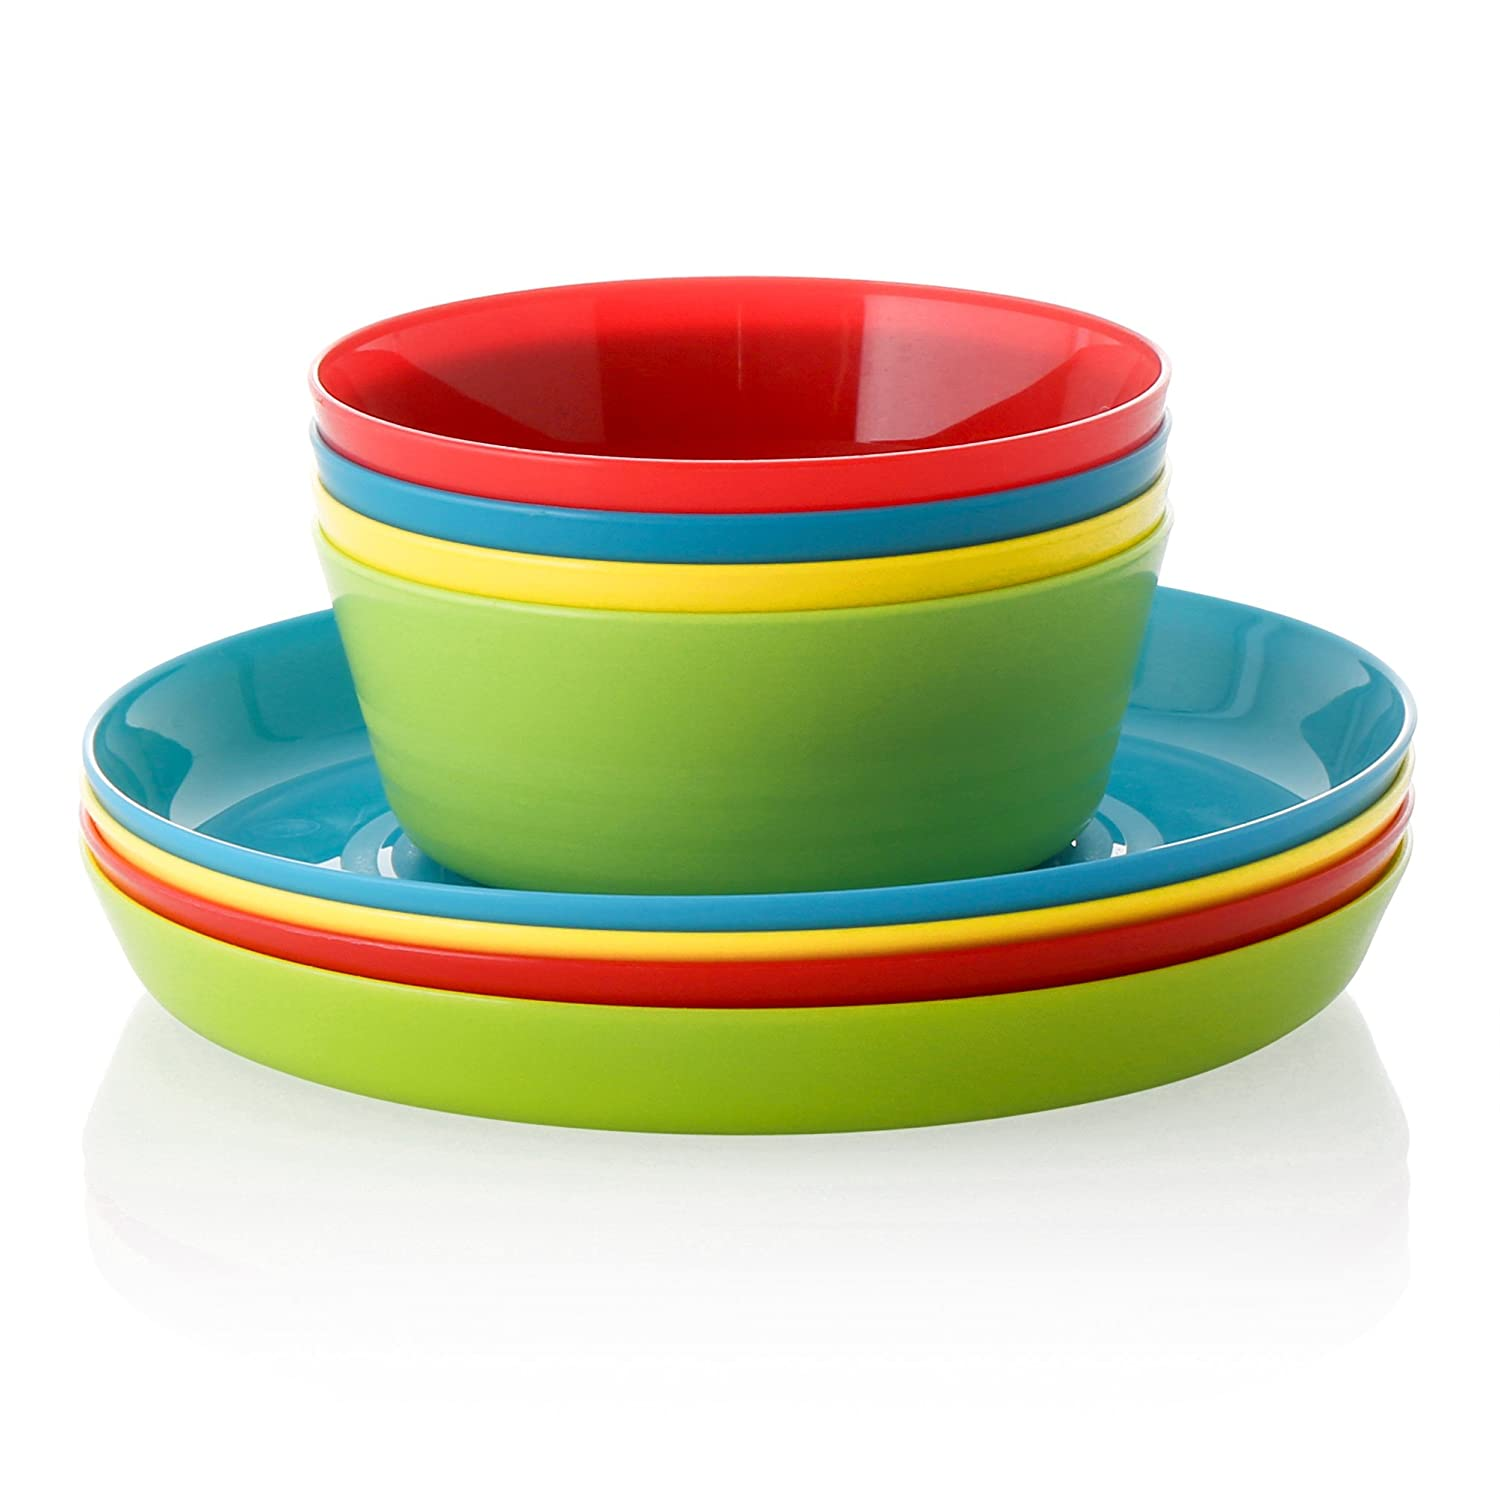 16 Piece Kids Eating Ware Set - 8 Plates and 8 Bowls in Fun Bright Colors for Toddlers and Kids - BPA Free Food Safe Material